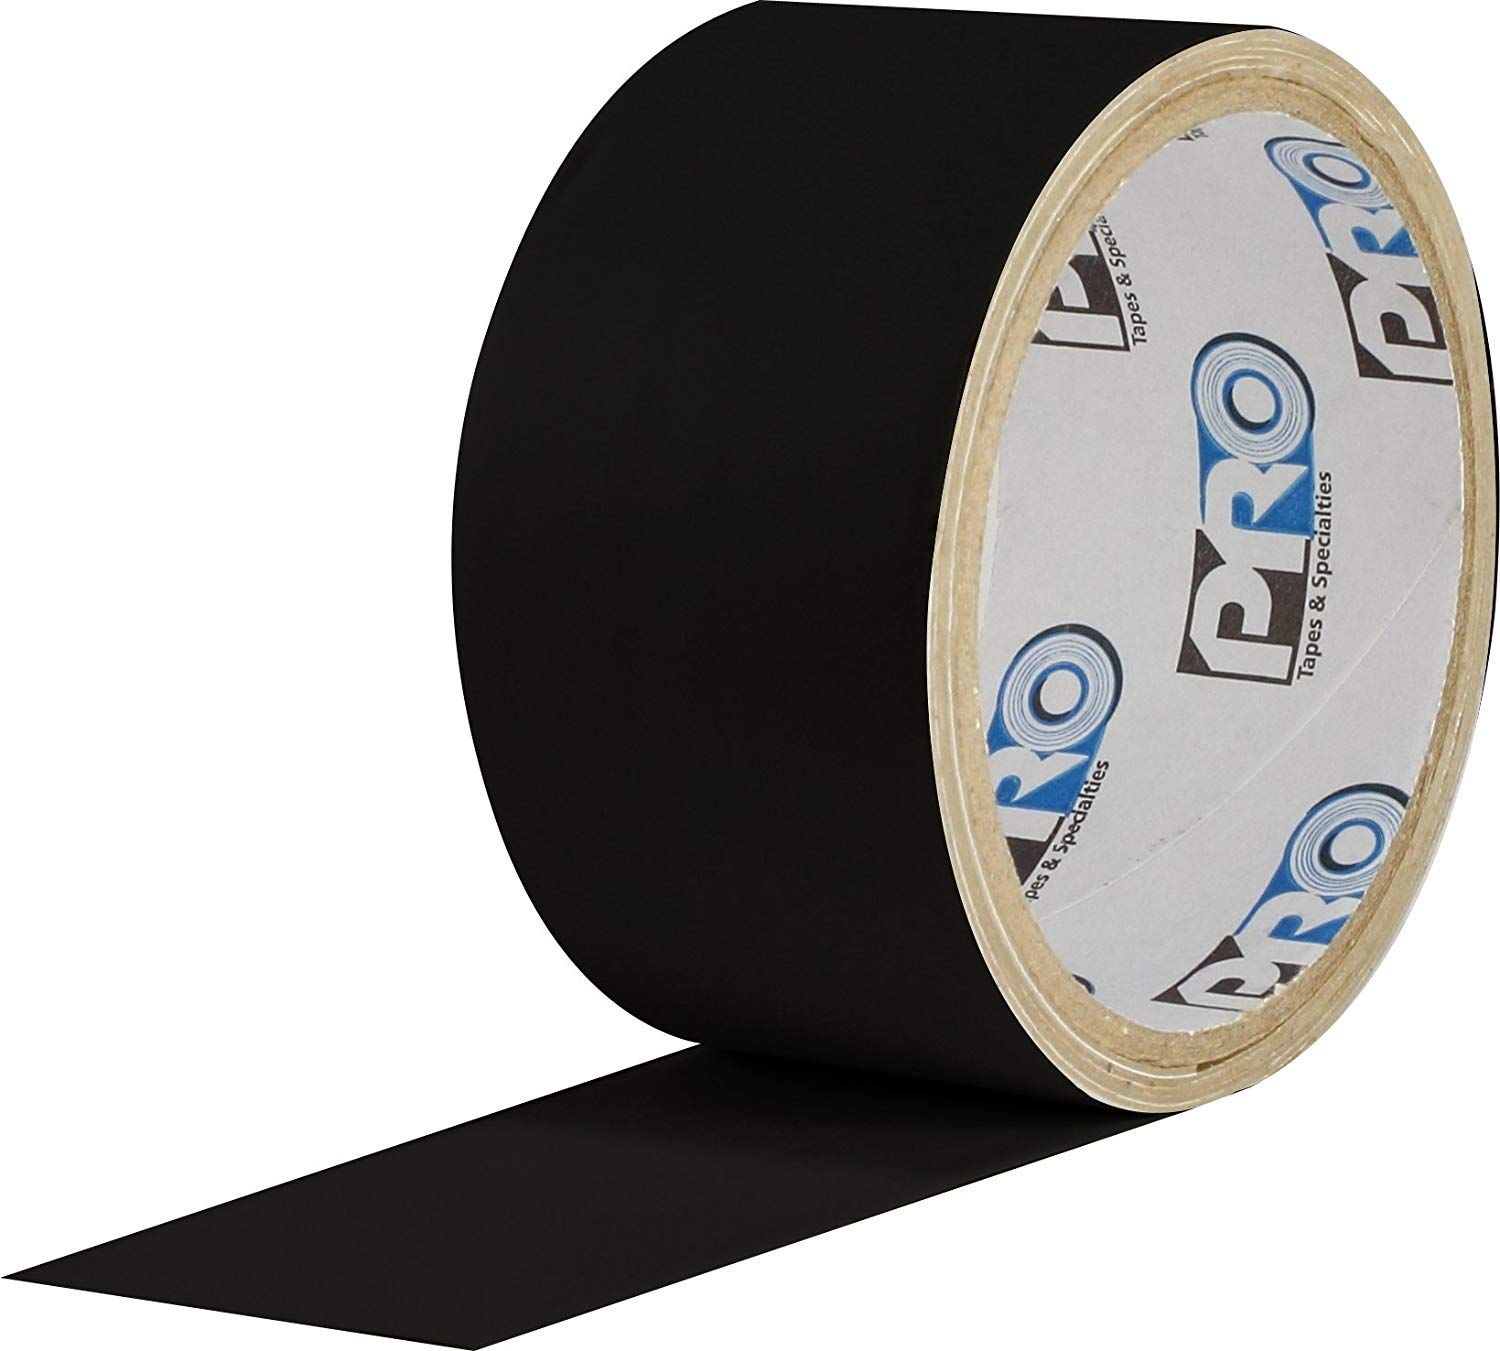 Protapes Pro Flex Flexible Butyl All Weather Patch And Shield Repair Tape 50 Length X 8 Width Black Pack Of 1 Click On The Repair Tape Roof Patch Tape